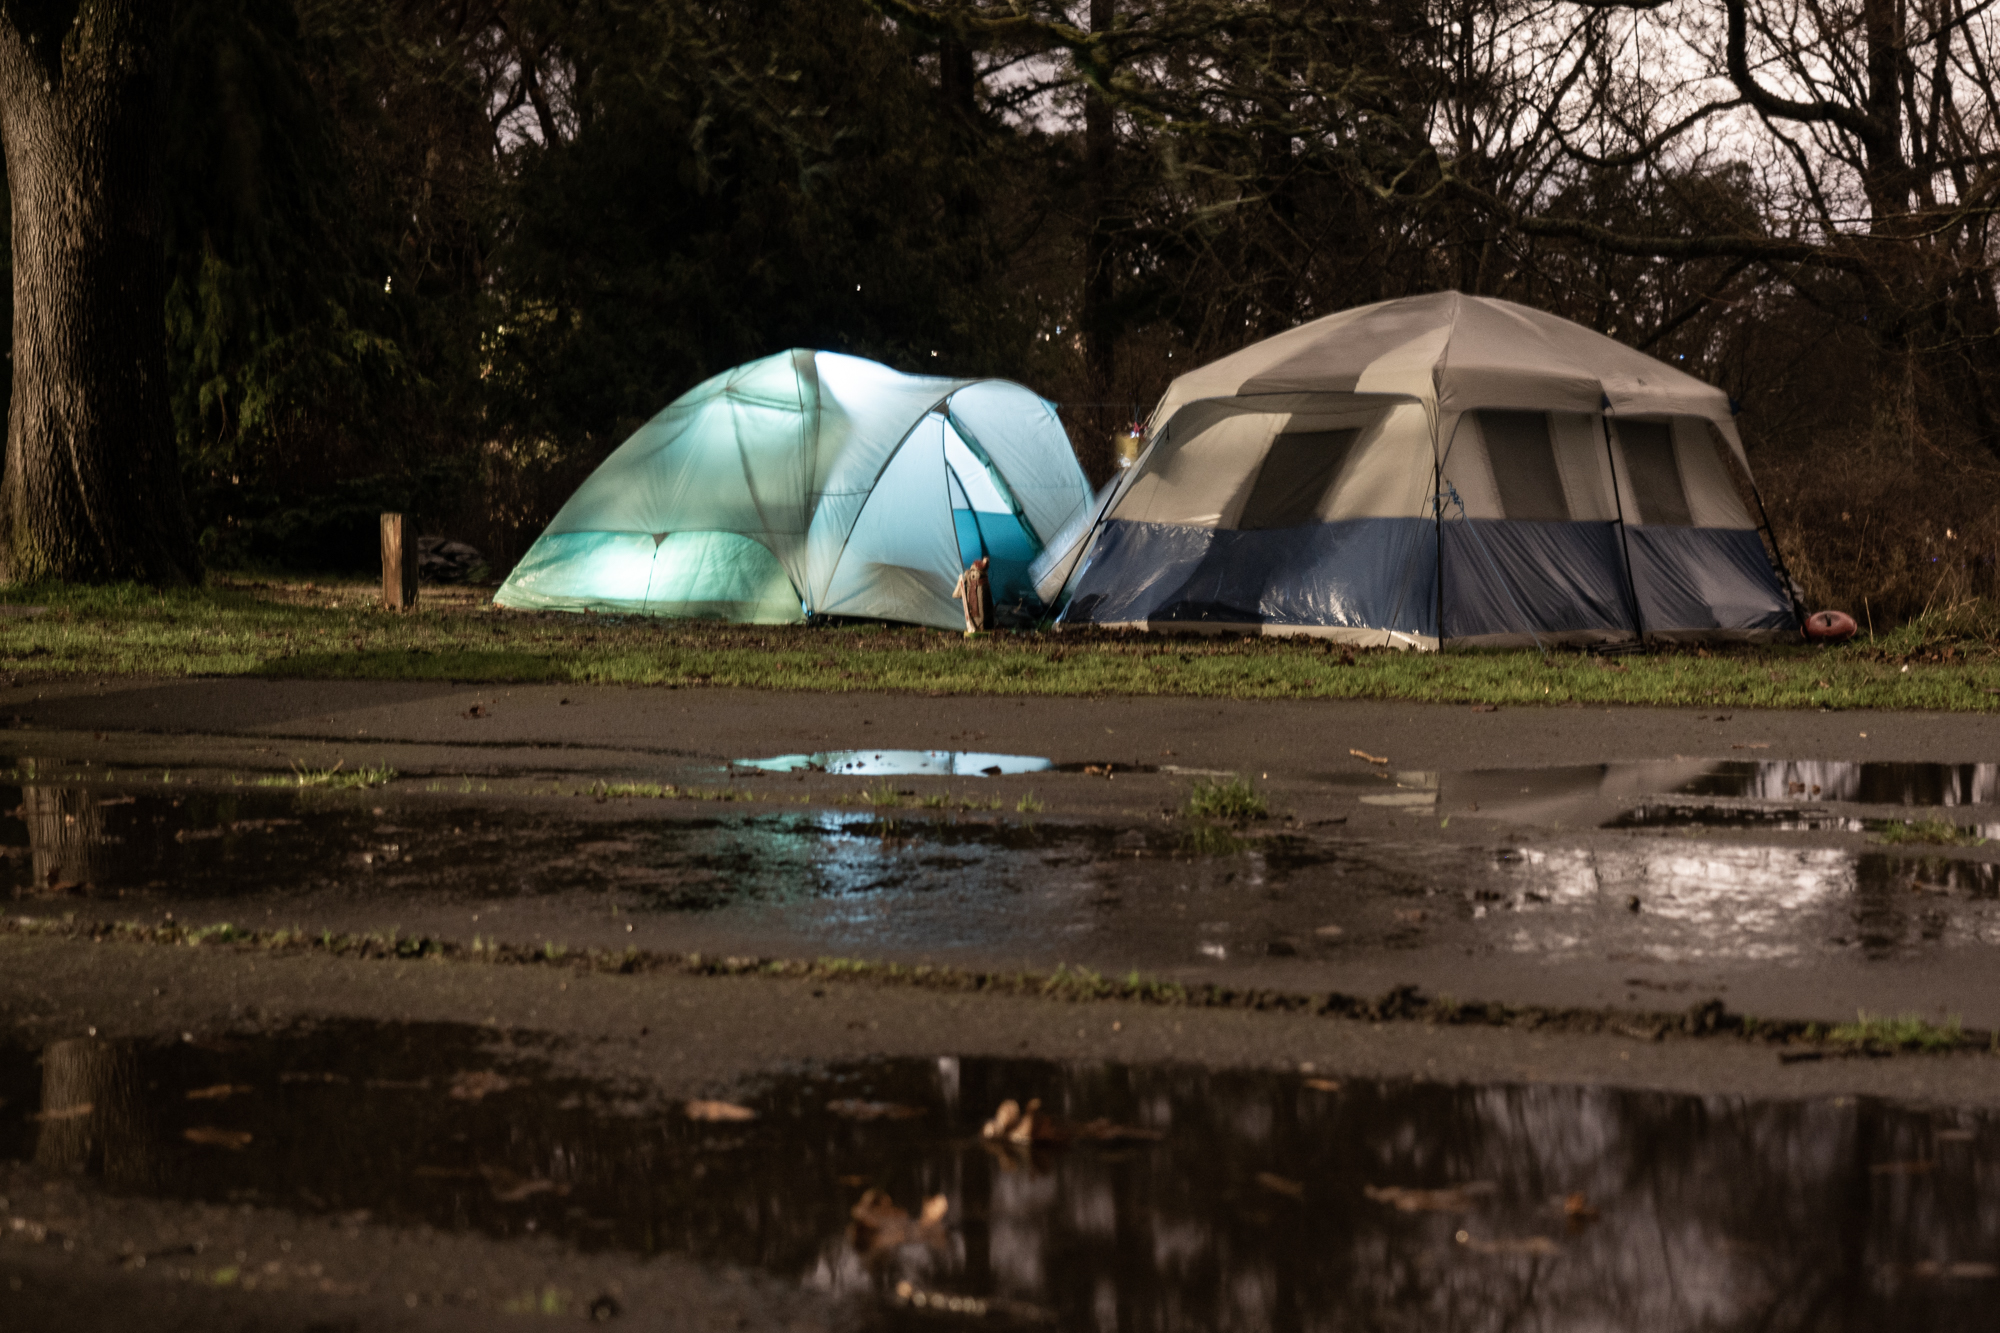 Victoria's homeless community faces winter with unclear housing options